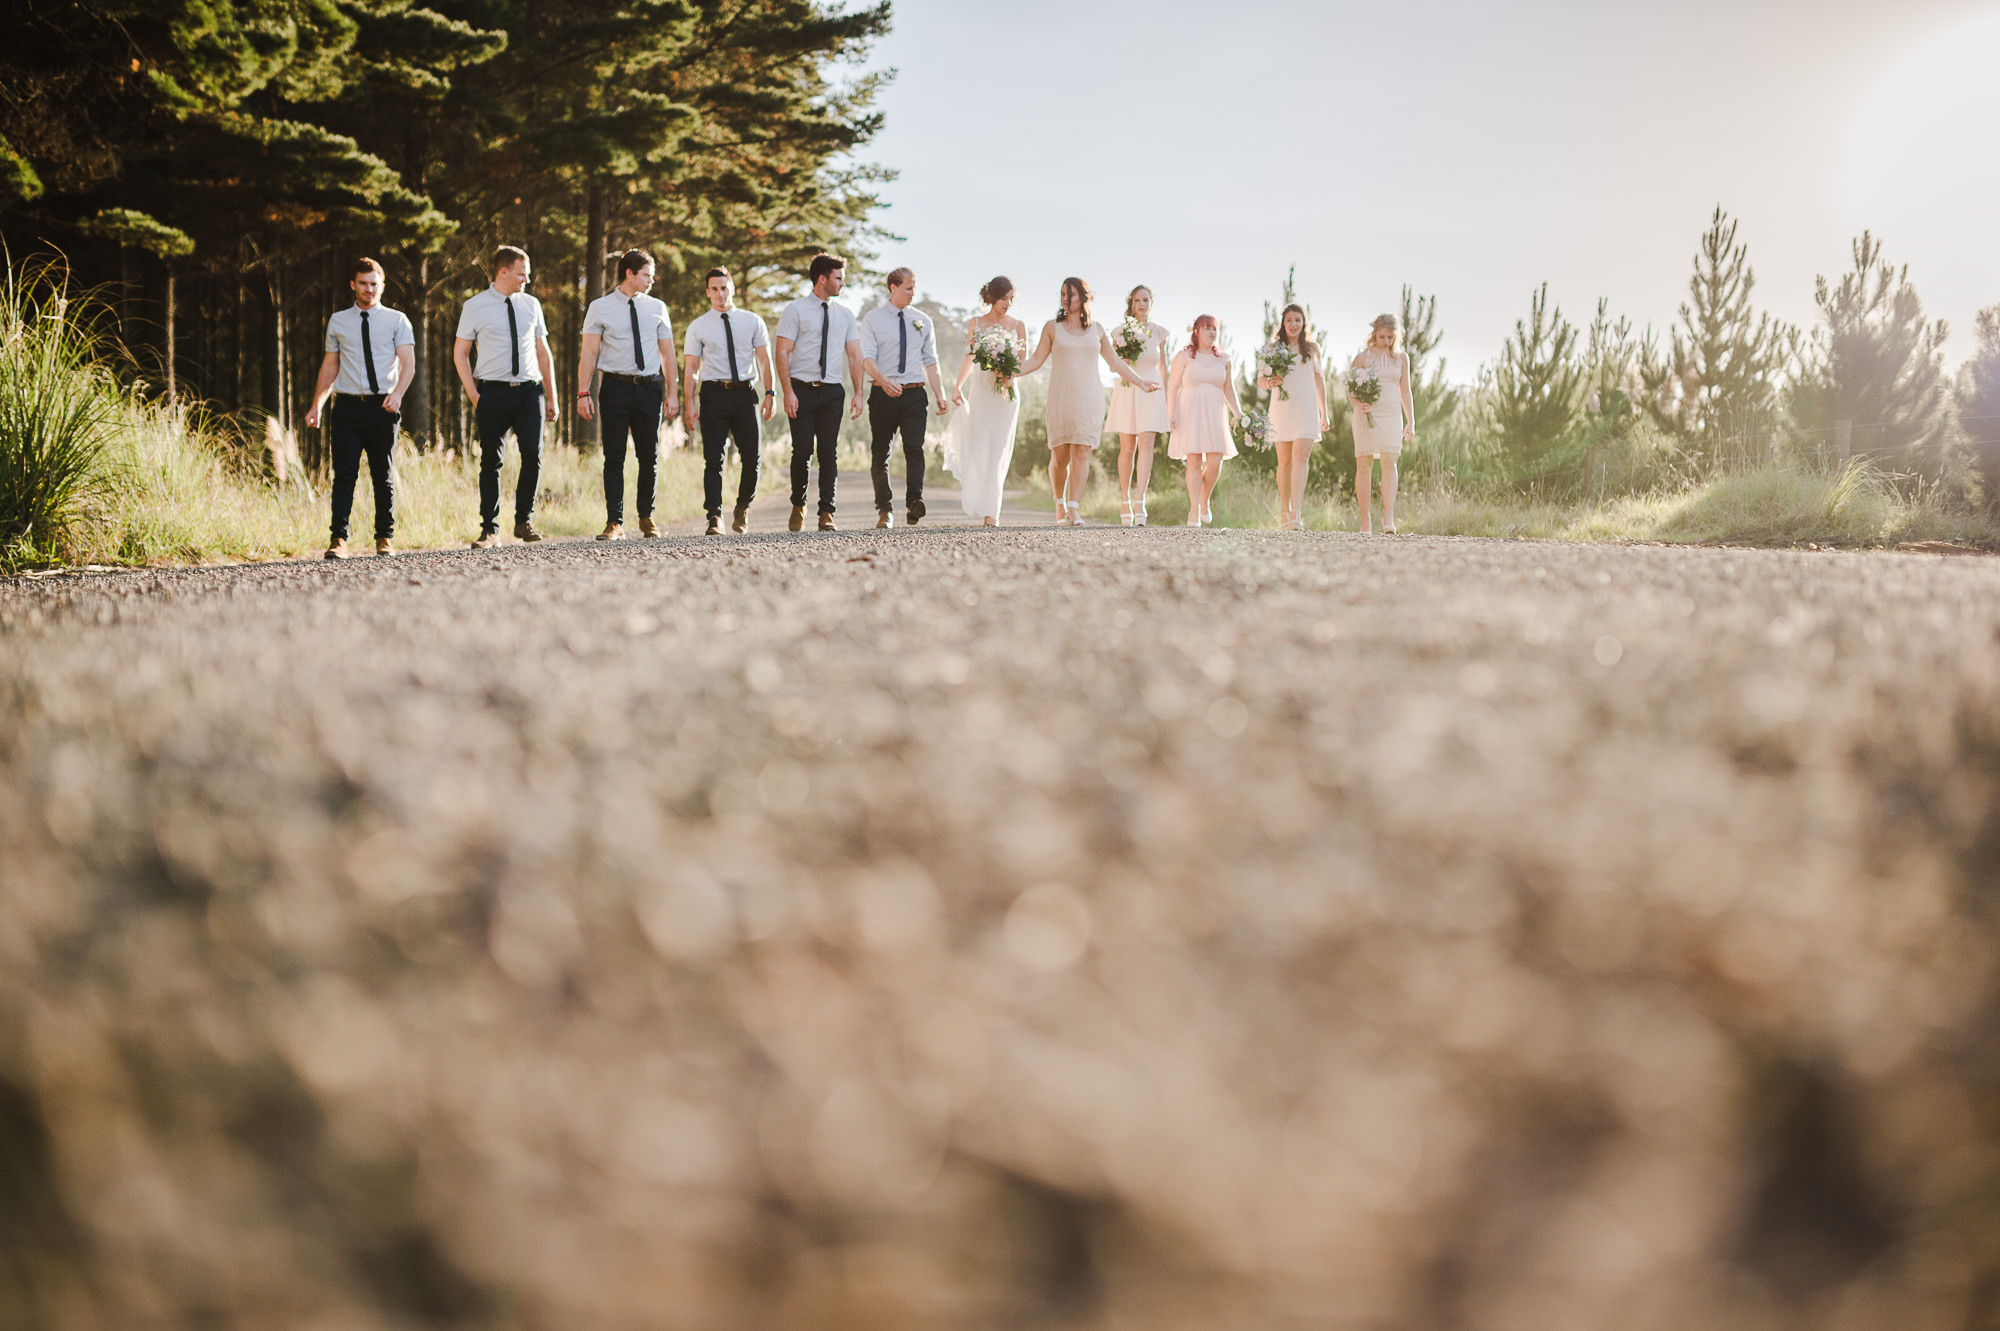 big bridal party walking along road.jpg